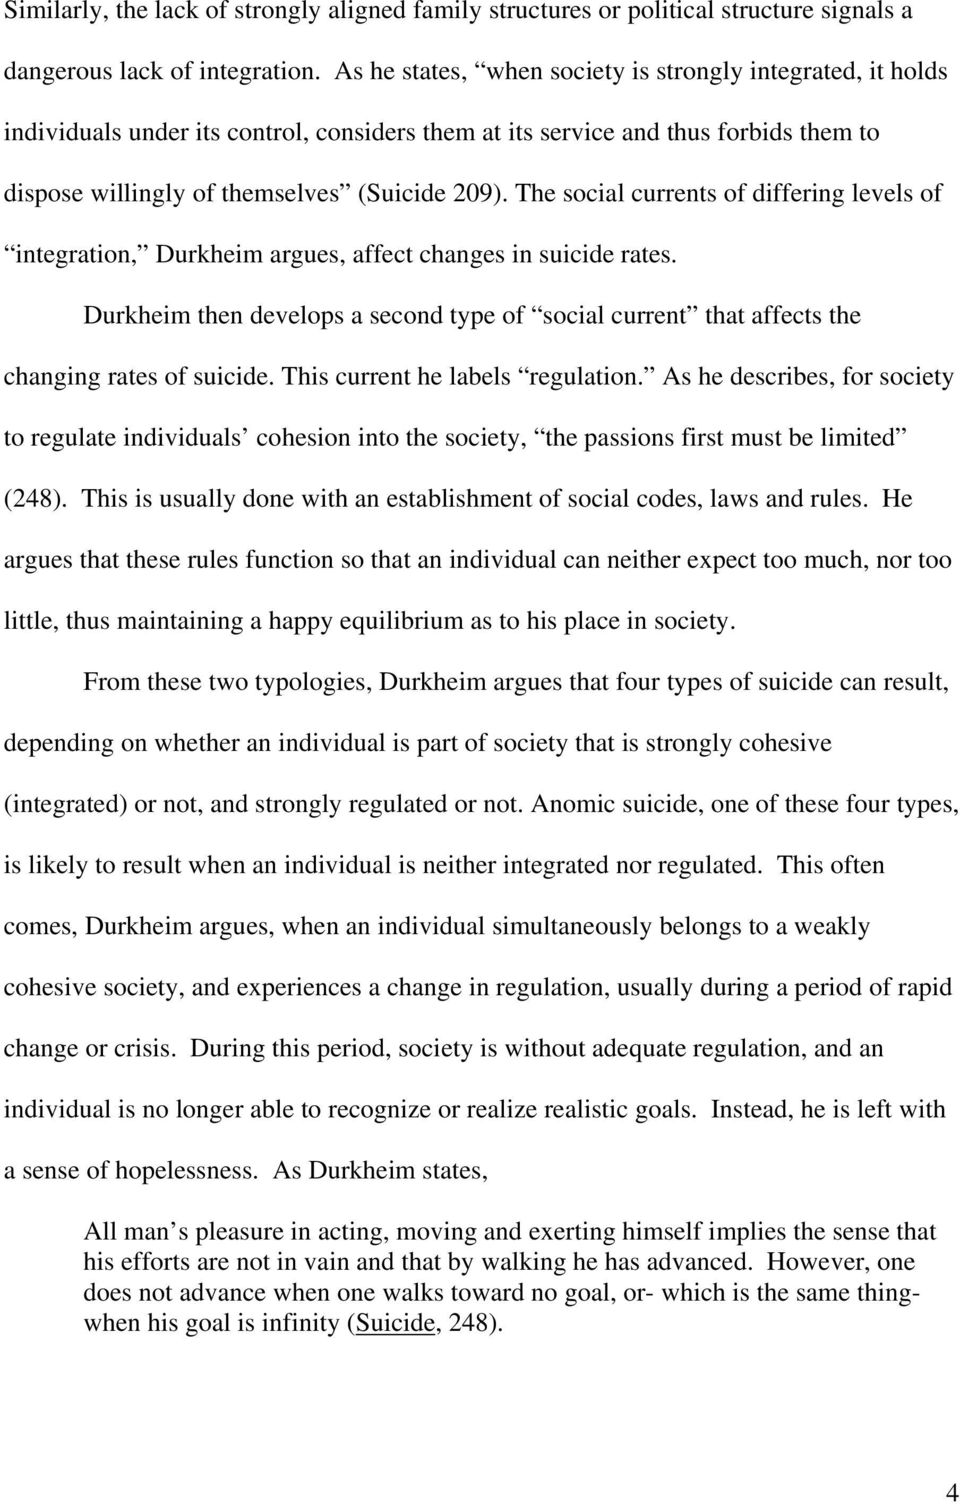 The social currents of differing levels of integration, Durkheim argues, affect changes in suicide rates.